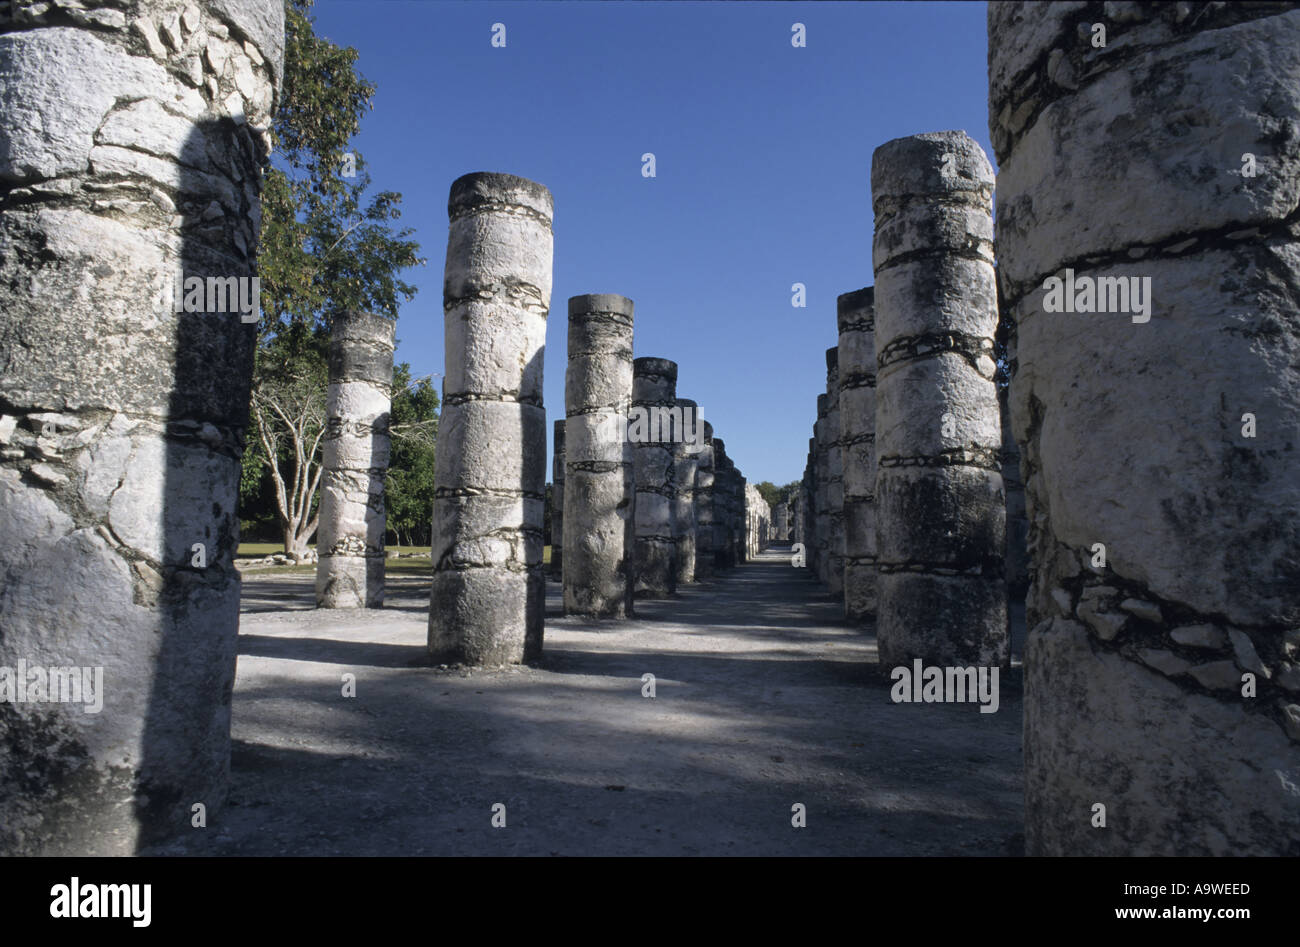 Chichen Itza, Mexico -  The Group Of The Thousand Columns - Stock Image